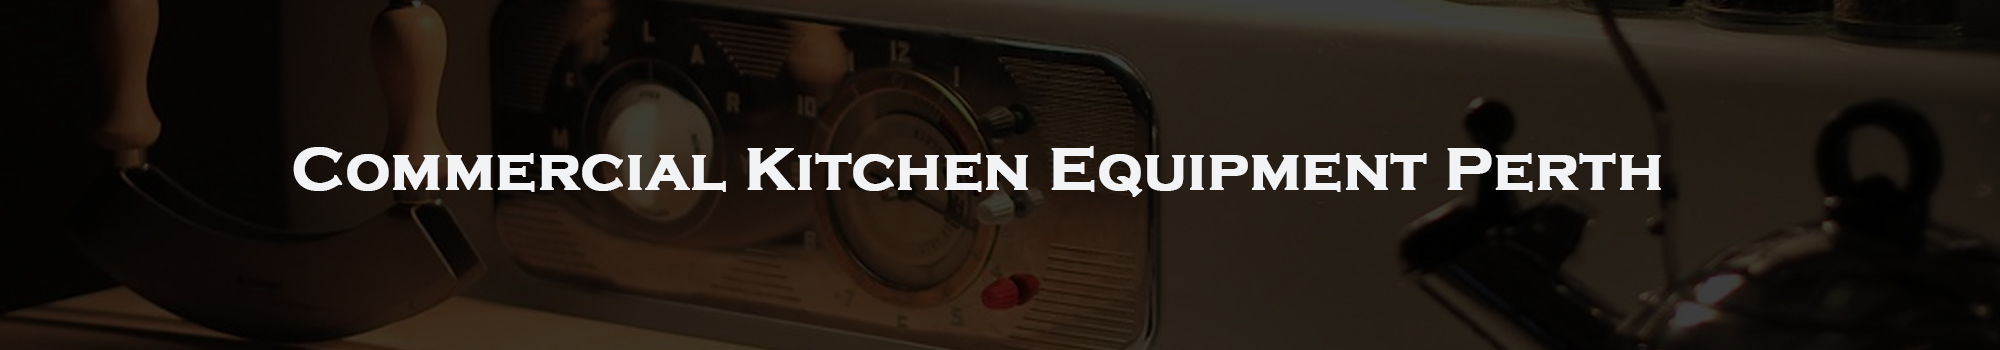 Commercial Kitchen Equipment Perth